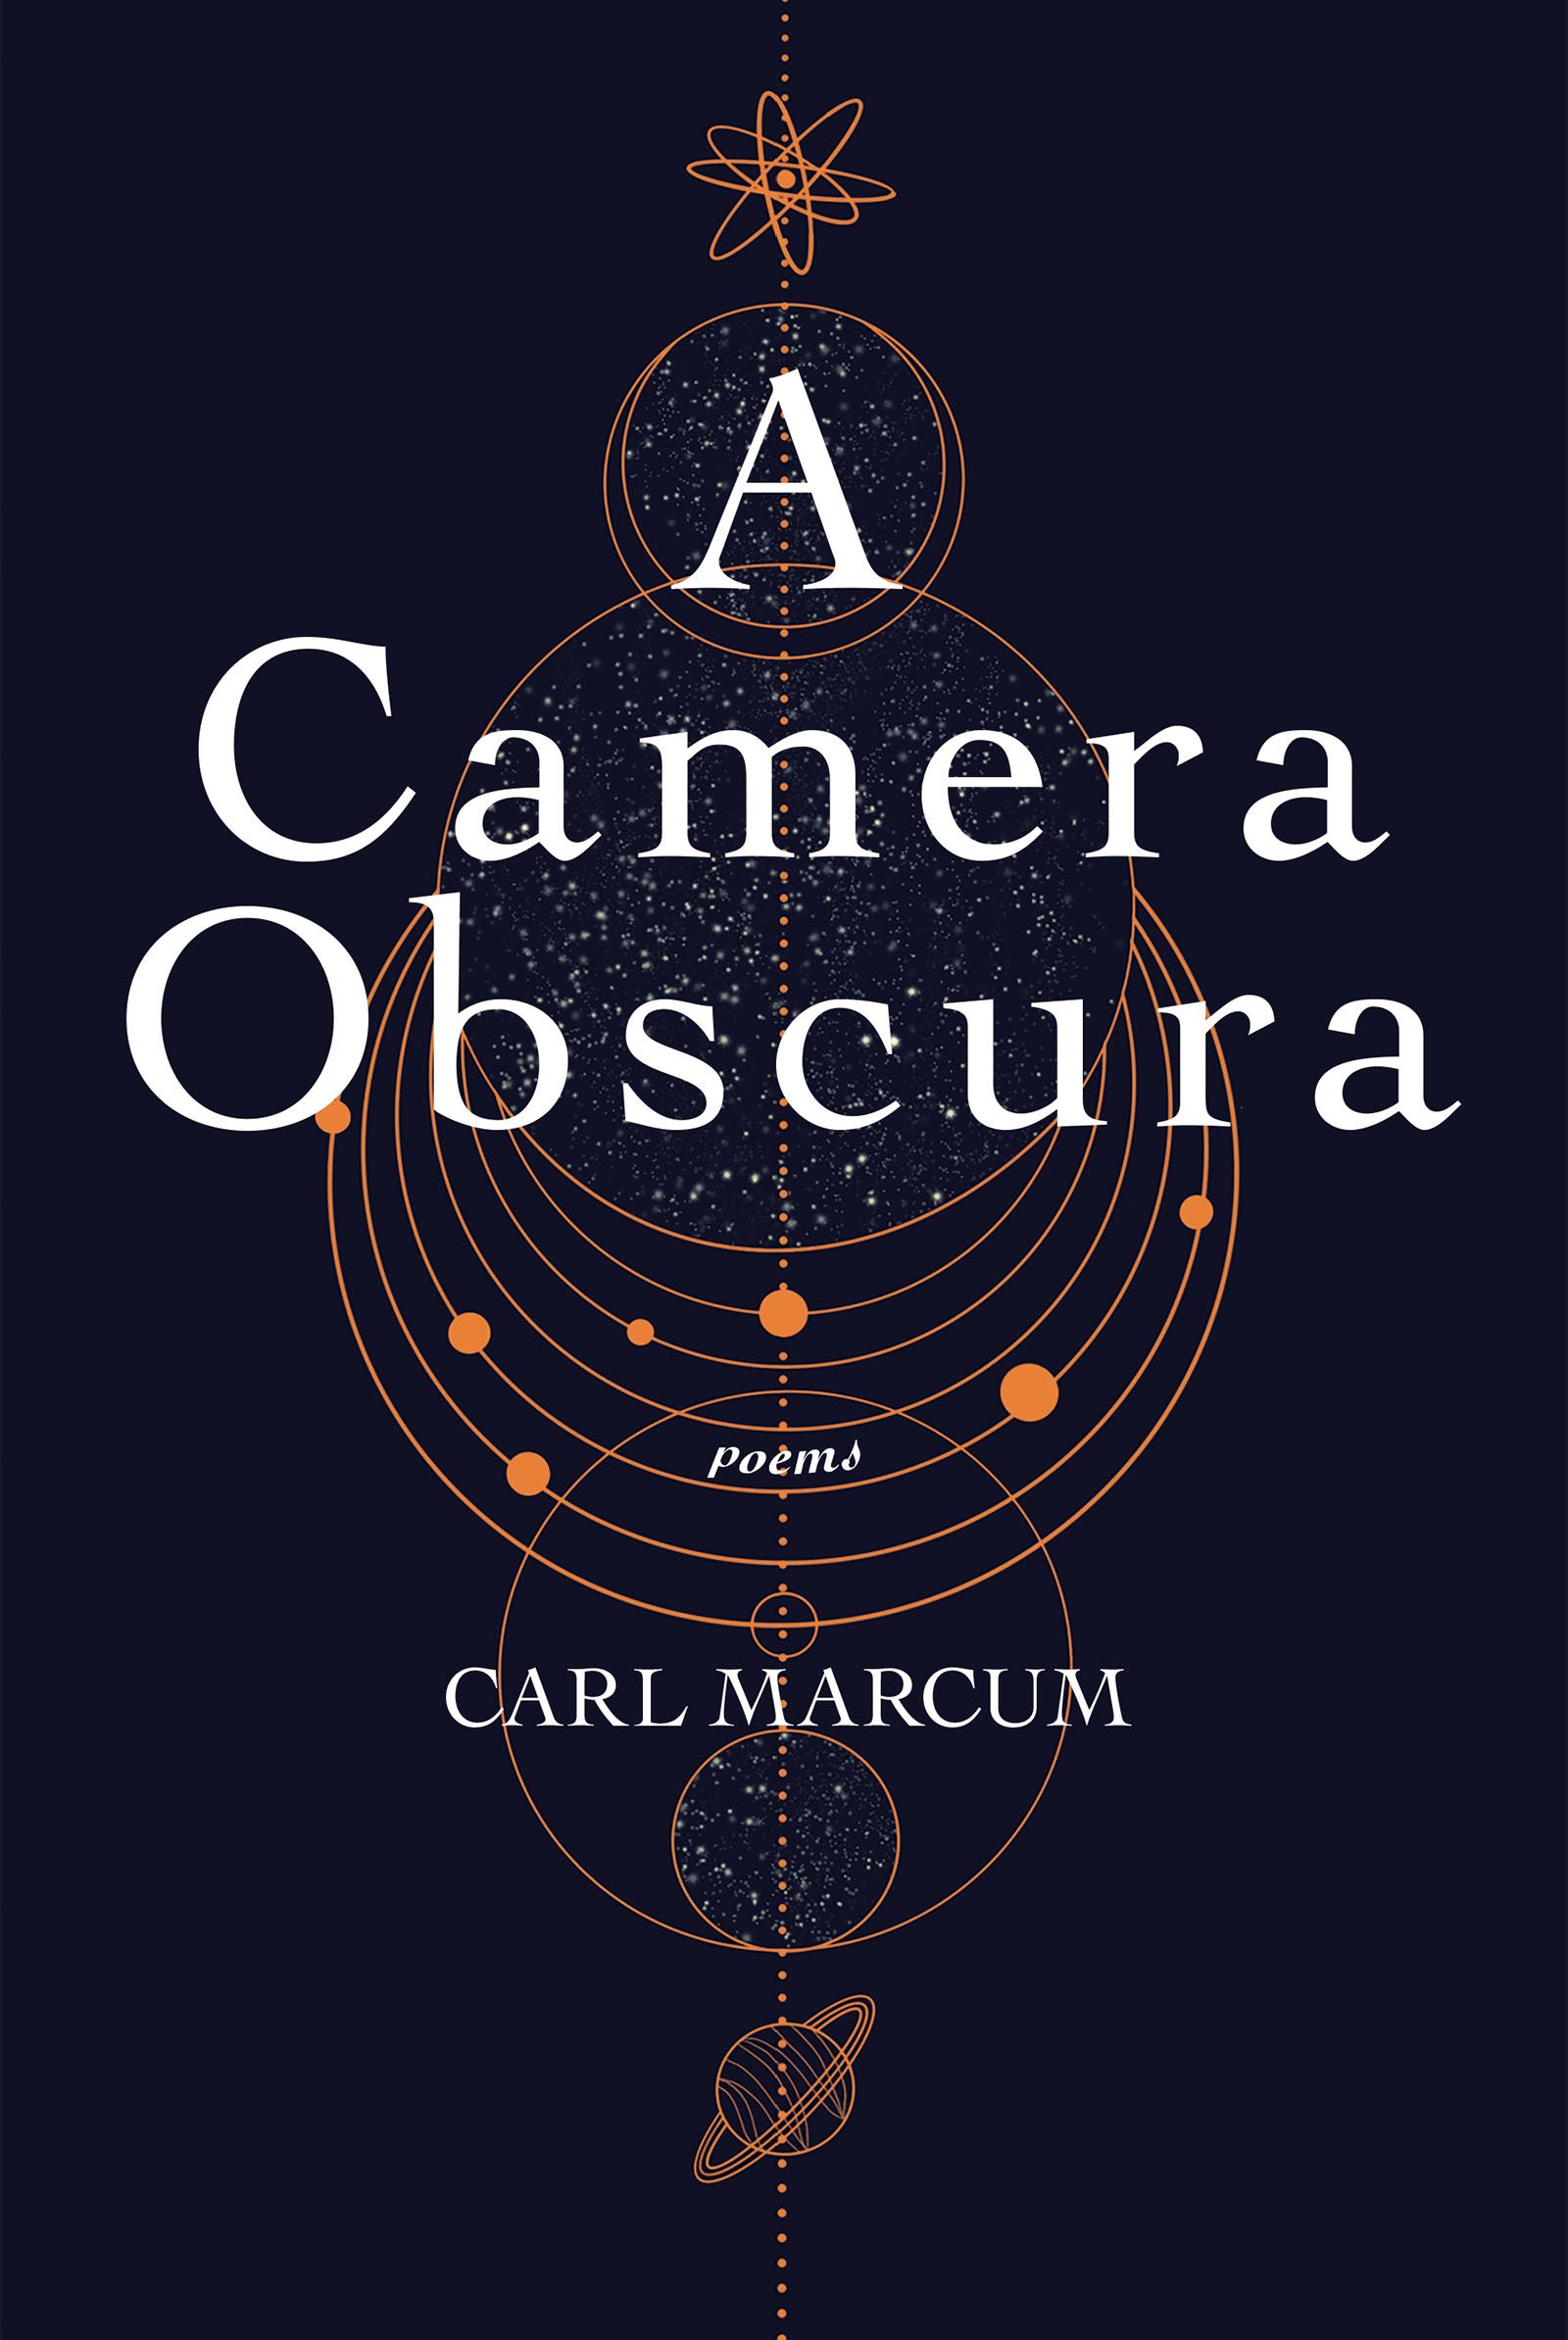 A graphic design of constellations and planets with white script on top that reads A Camera Obscura poems by Carl Marcum.